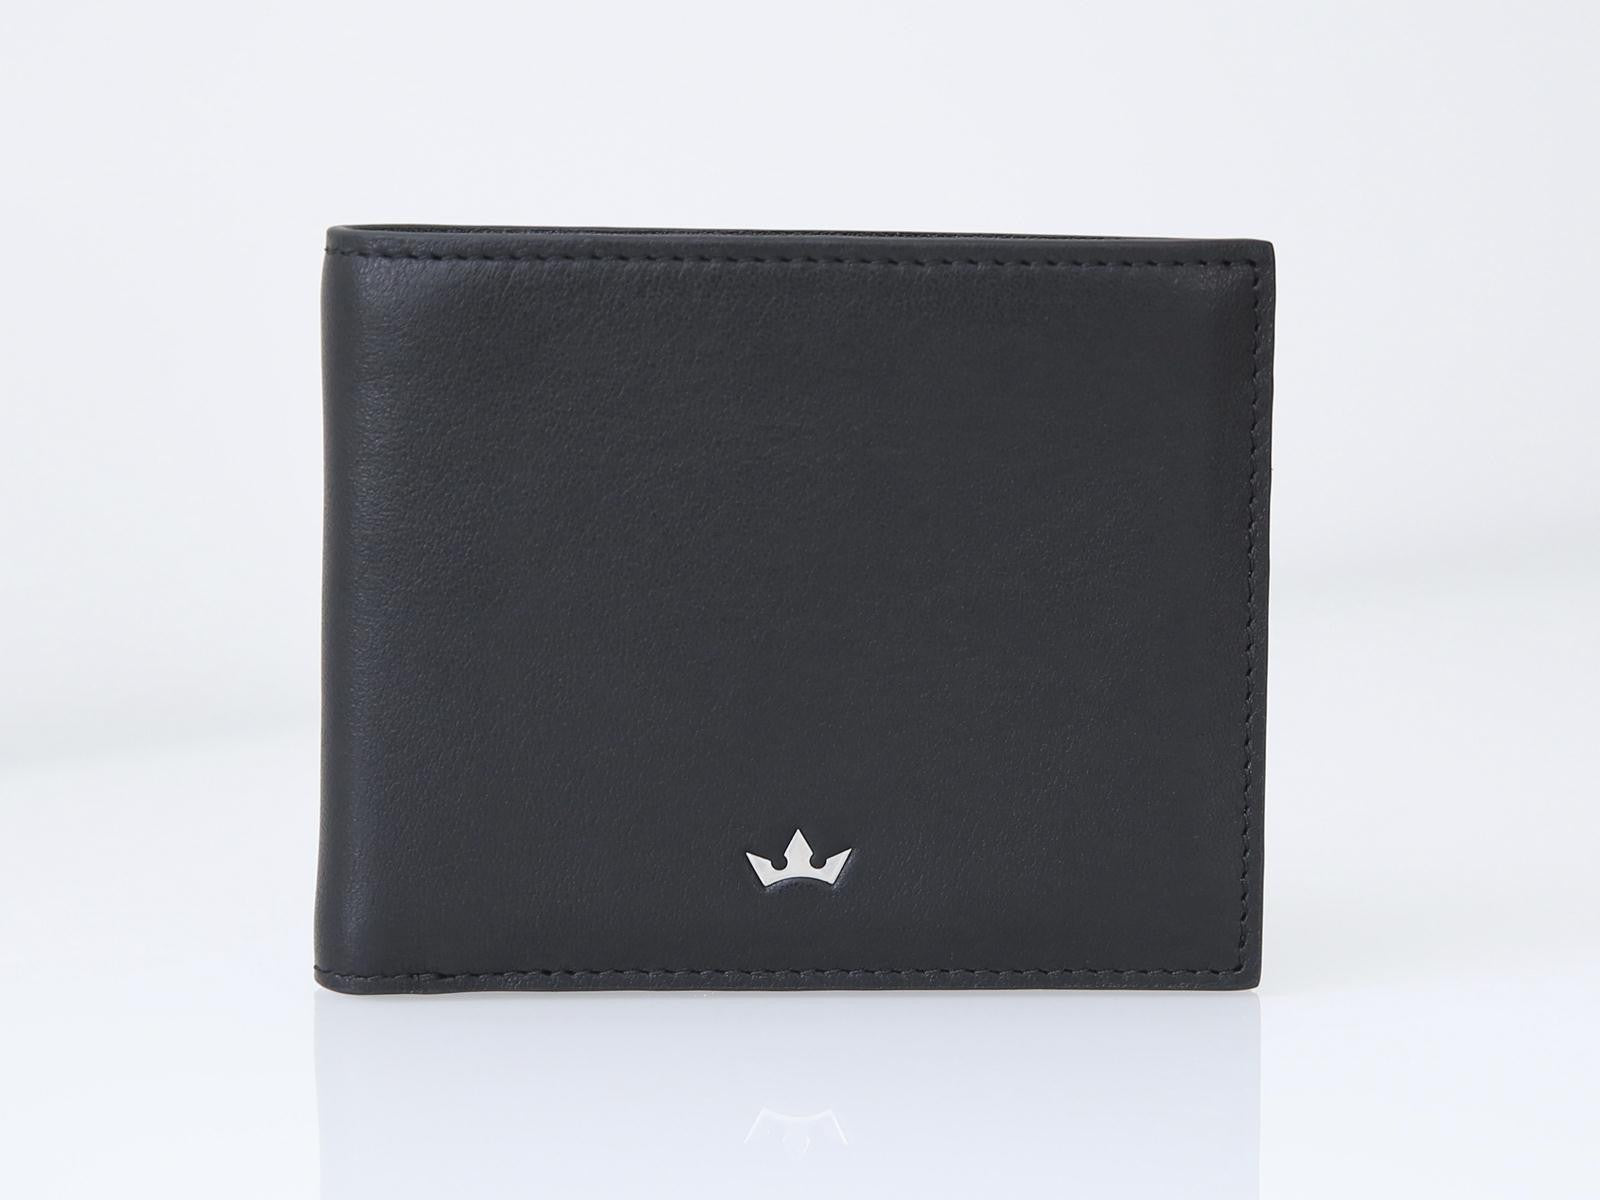 Roderer Bifold Wallet 6 Card Roma Black